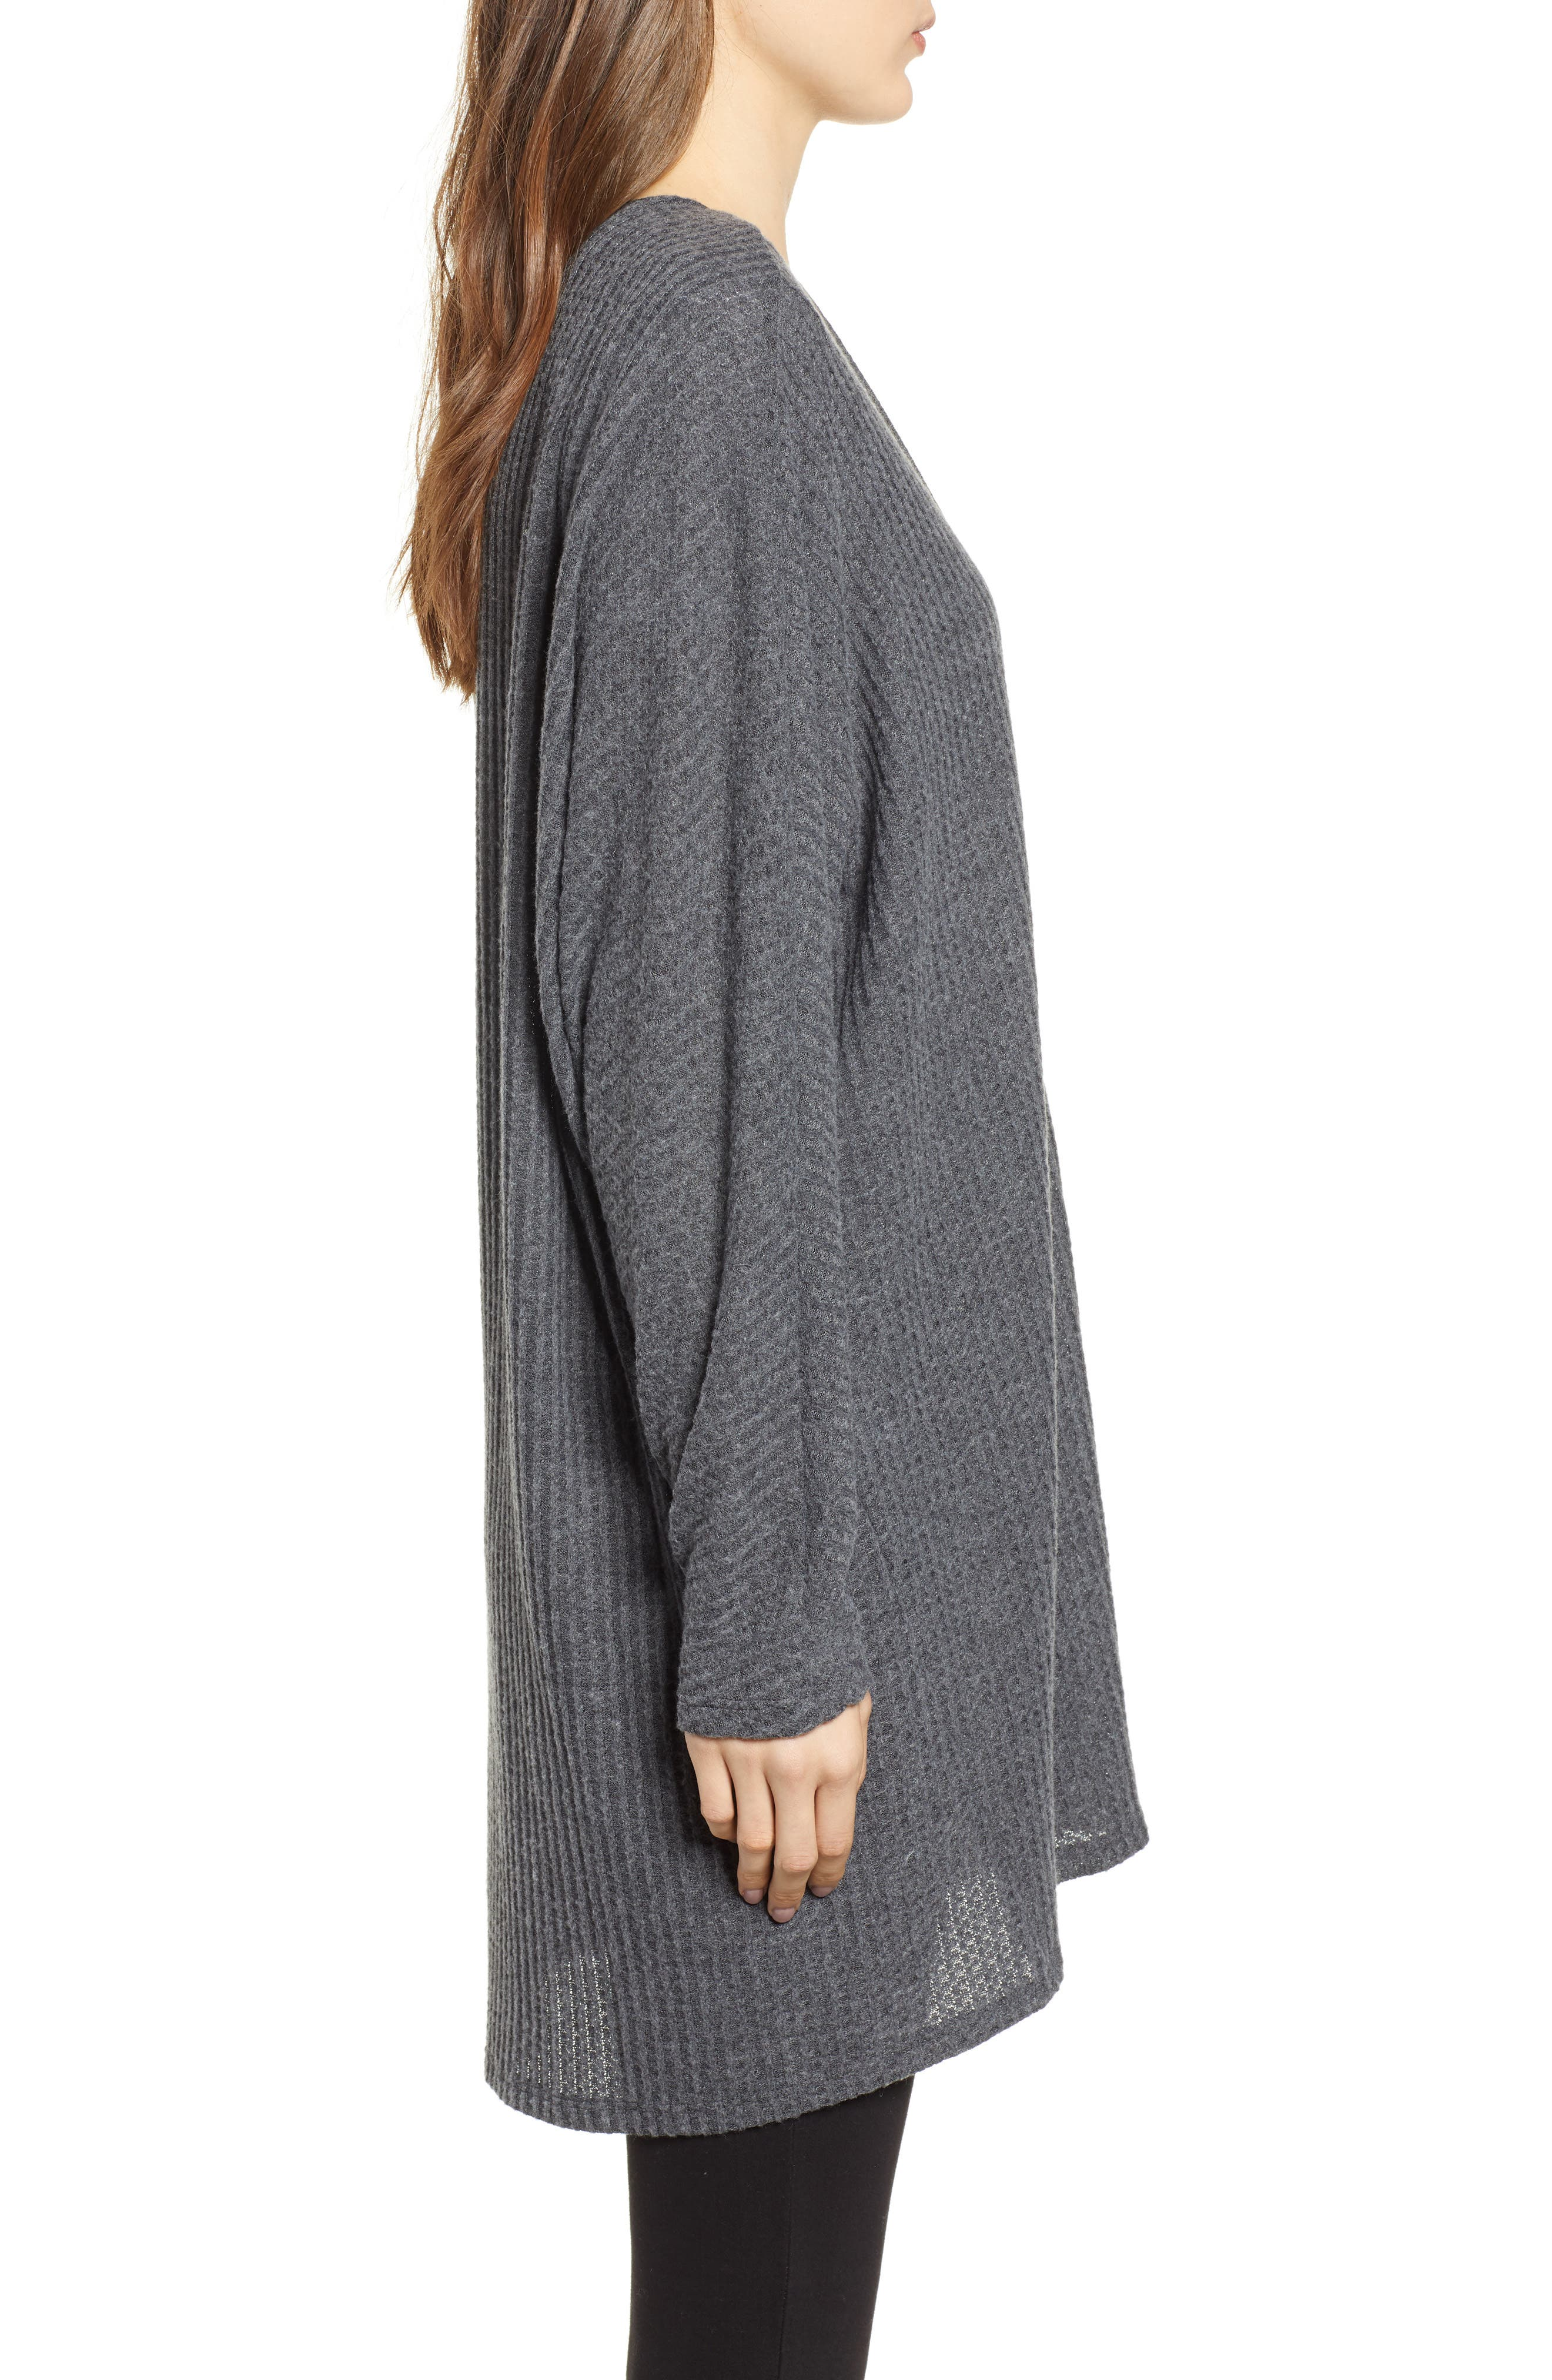 Keep It Casual Thermal Cardigan,                             Alternate thumbnail 3, color,                             CHARCOAL